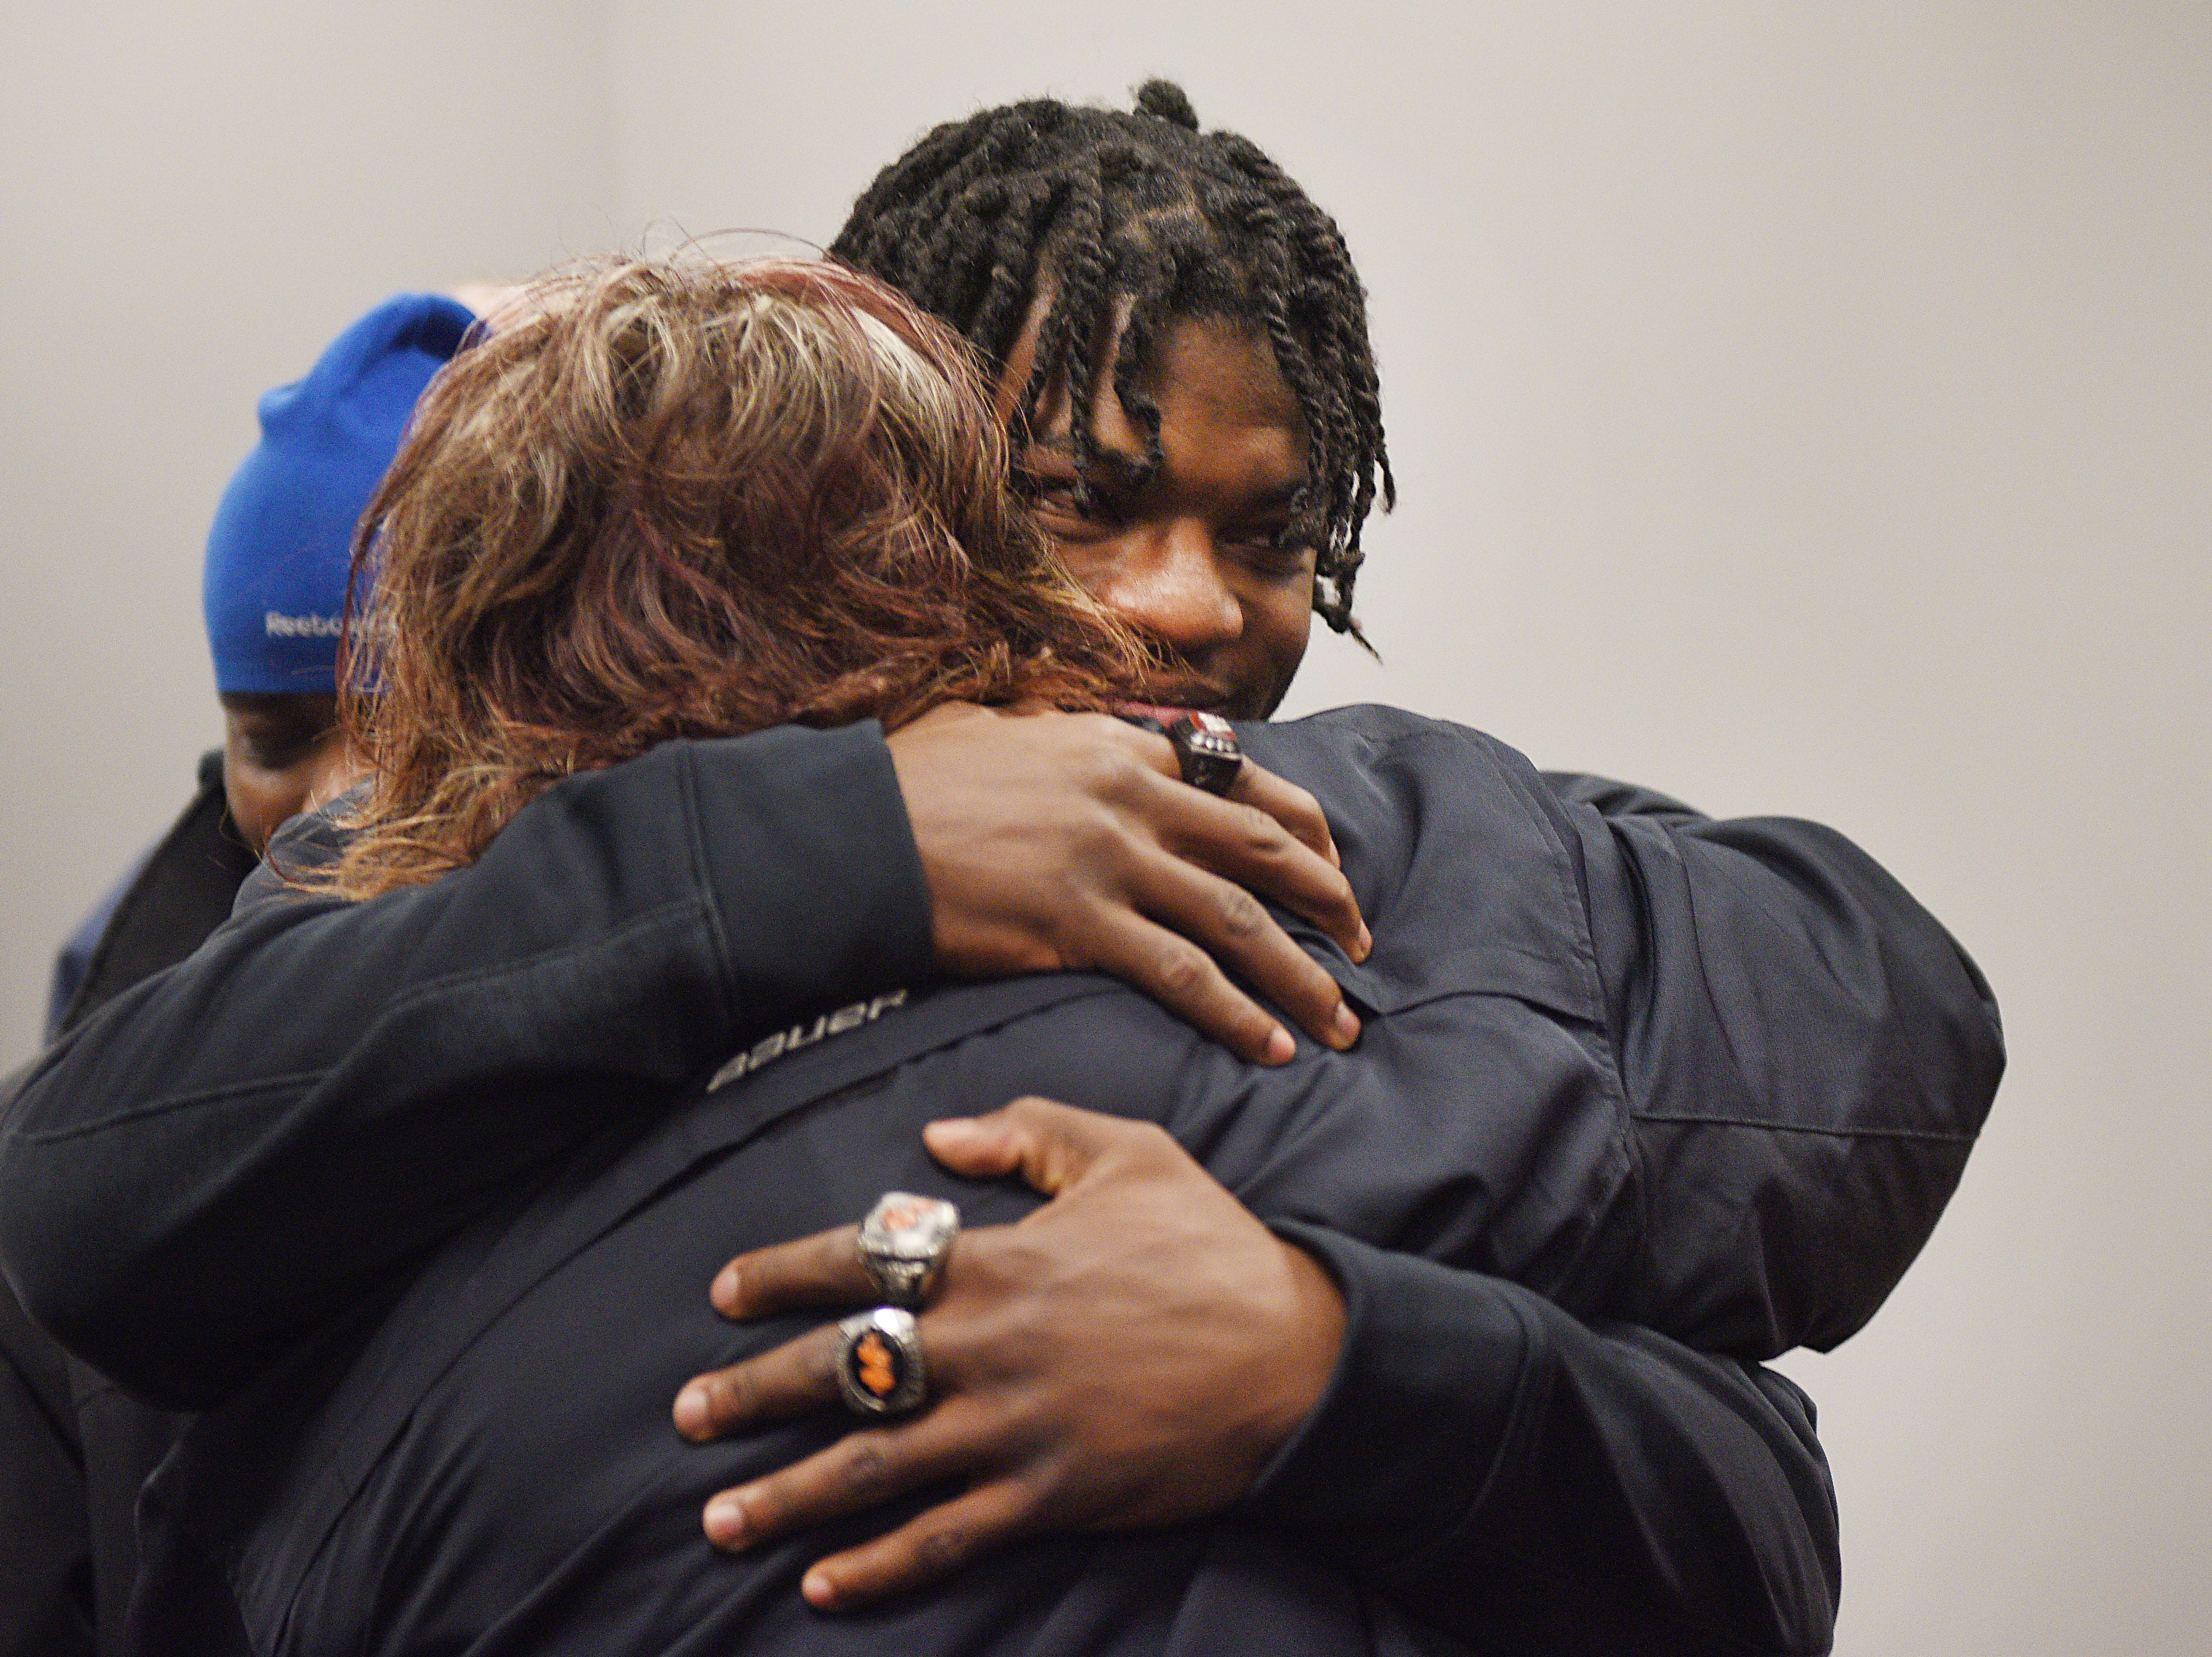 Washington's Tupak Kpeayeh hugs family friend Traci Hollingshead during signing day Wednesday, Feb. 6, at Avera Sports Institute in Sioux Falls. Kpeayeh singed a National Letter of Intent to play football at Morningside College.